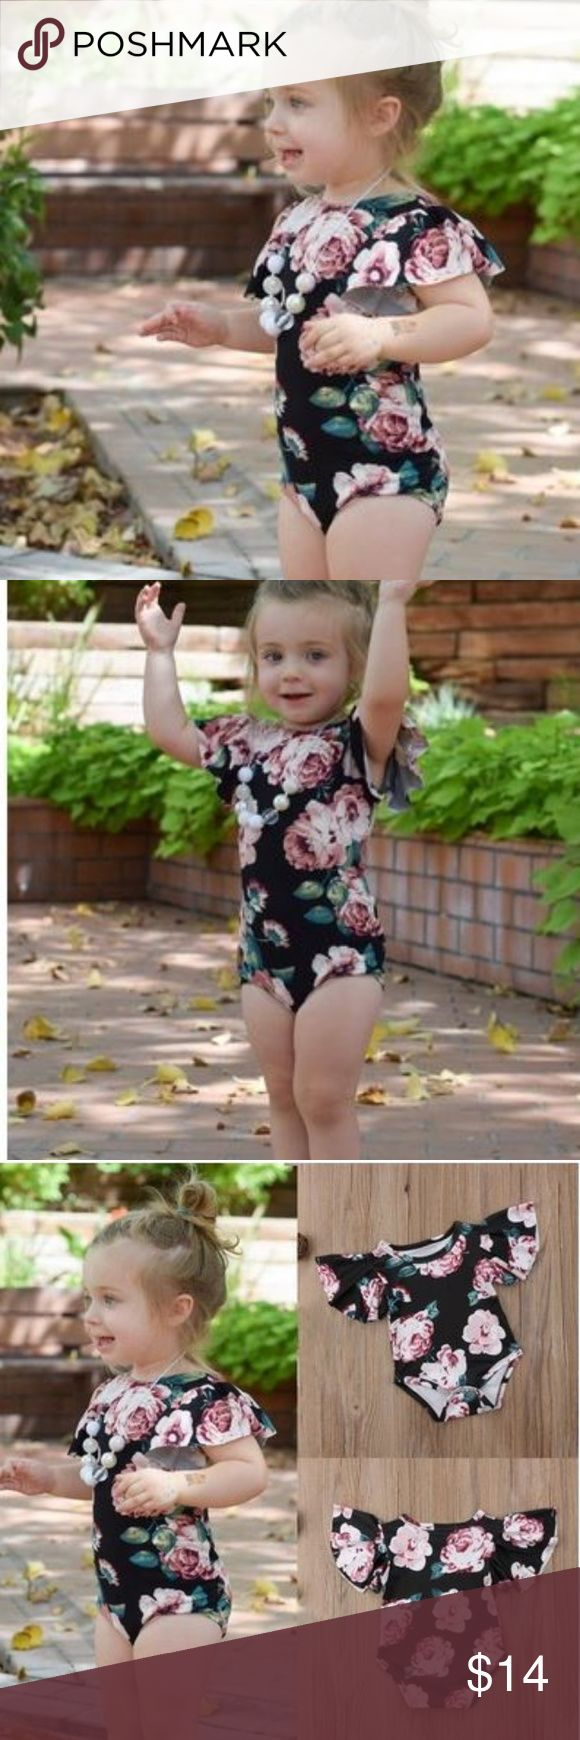 Boutique baby girl romper Black with pink flowers and soft flowy sleeves. Snaps at the crotch and is stretchy but silky leotard type look. Perfect for baby's first dance practice! New in bag. One Pieces